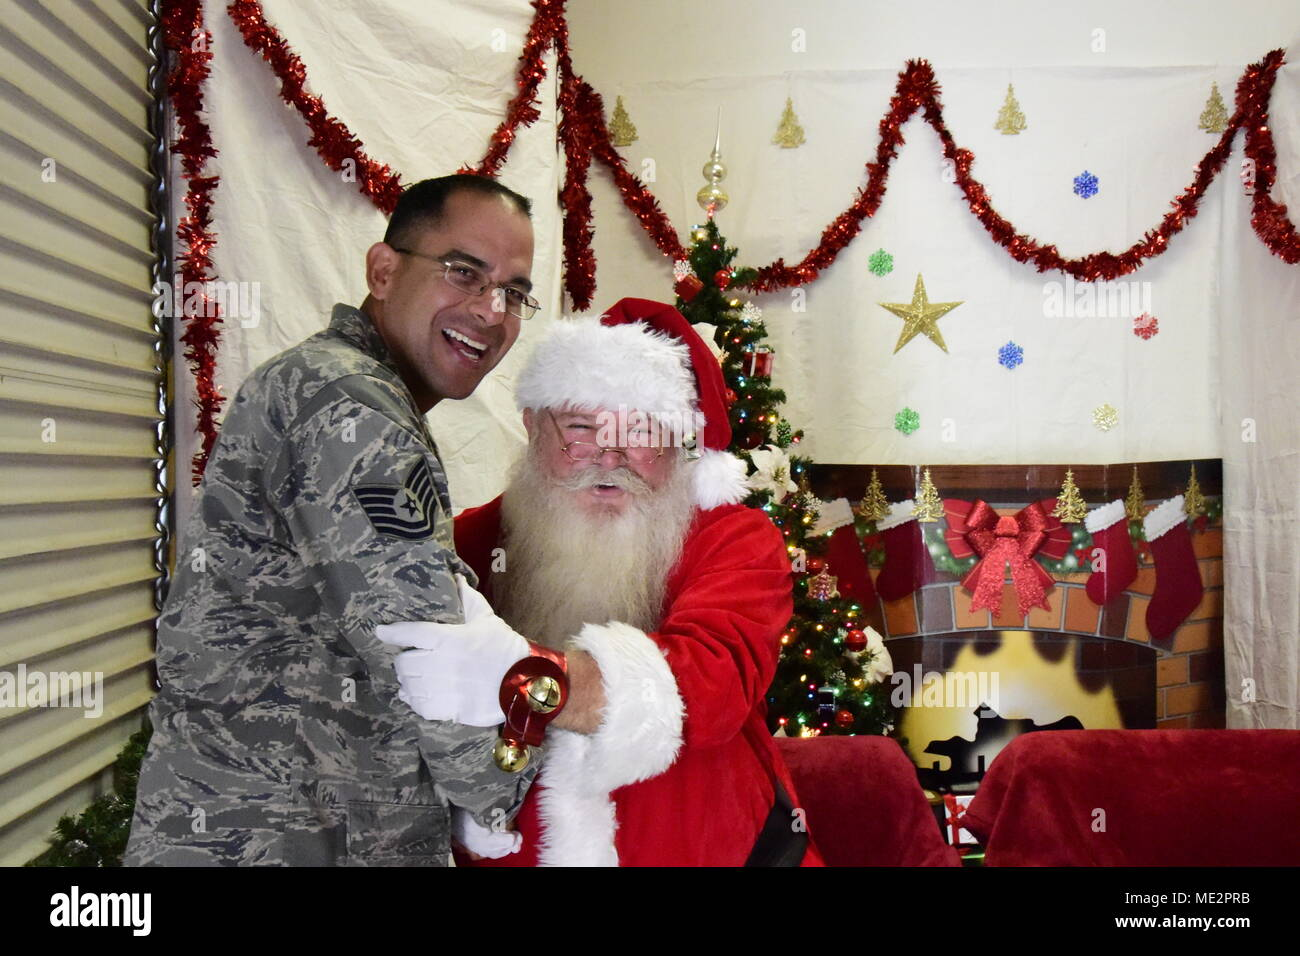 U.S. Air National Guard Tech. Sgt. Juan Marquez, a chaplain assistant with the 163d Attack Wing Chaplain Corps, left, embraces, retired Master Sgt. Christian Gavin, acting as Santa Claus during the annual Santa's Workshop at March Air Reserve Base, California, Dec. 2, 2017. Airmen with the wing's 210th Weather Flight organize the annual event to provide members and family with stocking stuffers and holiday cheer. - Stock Image